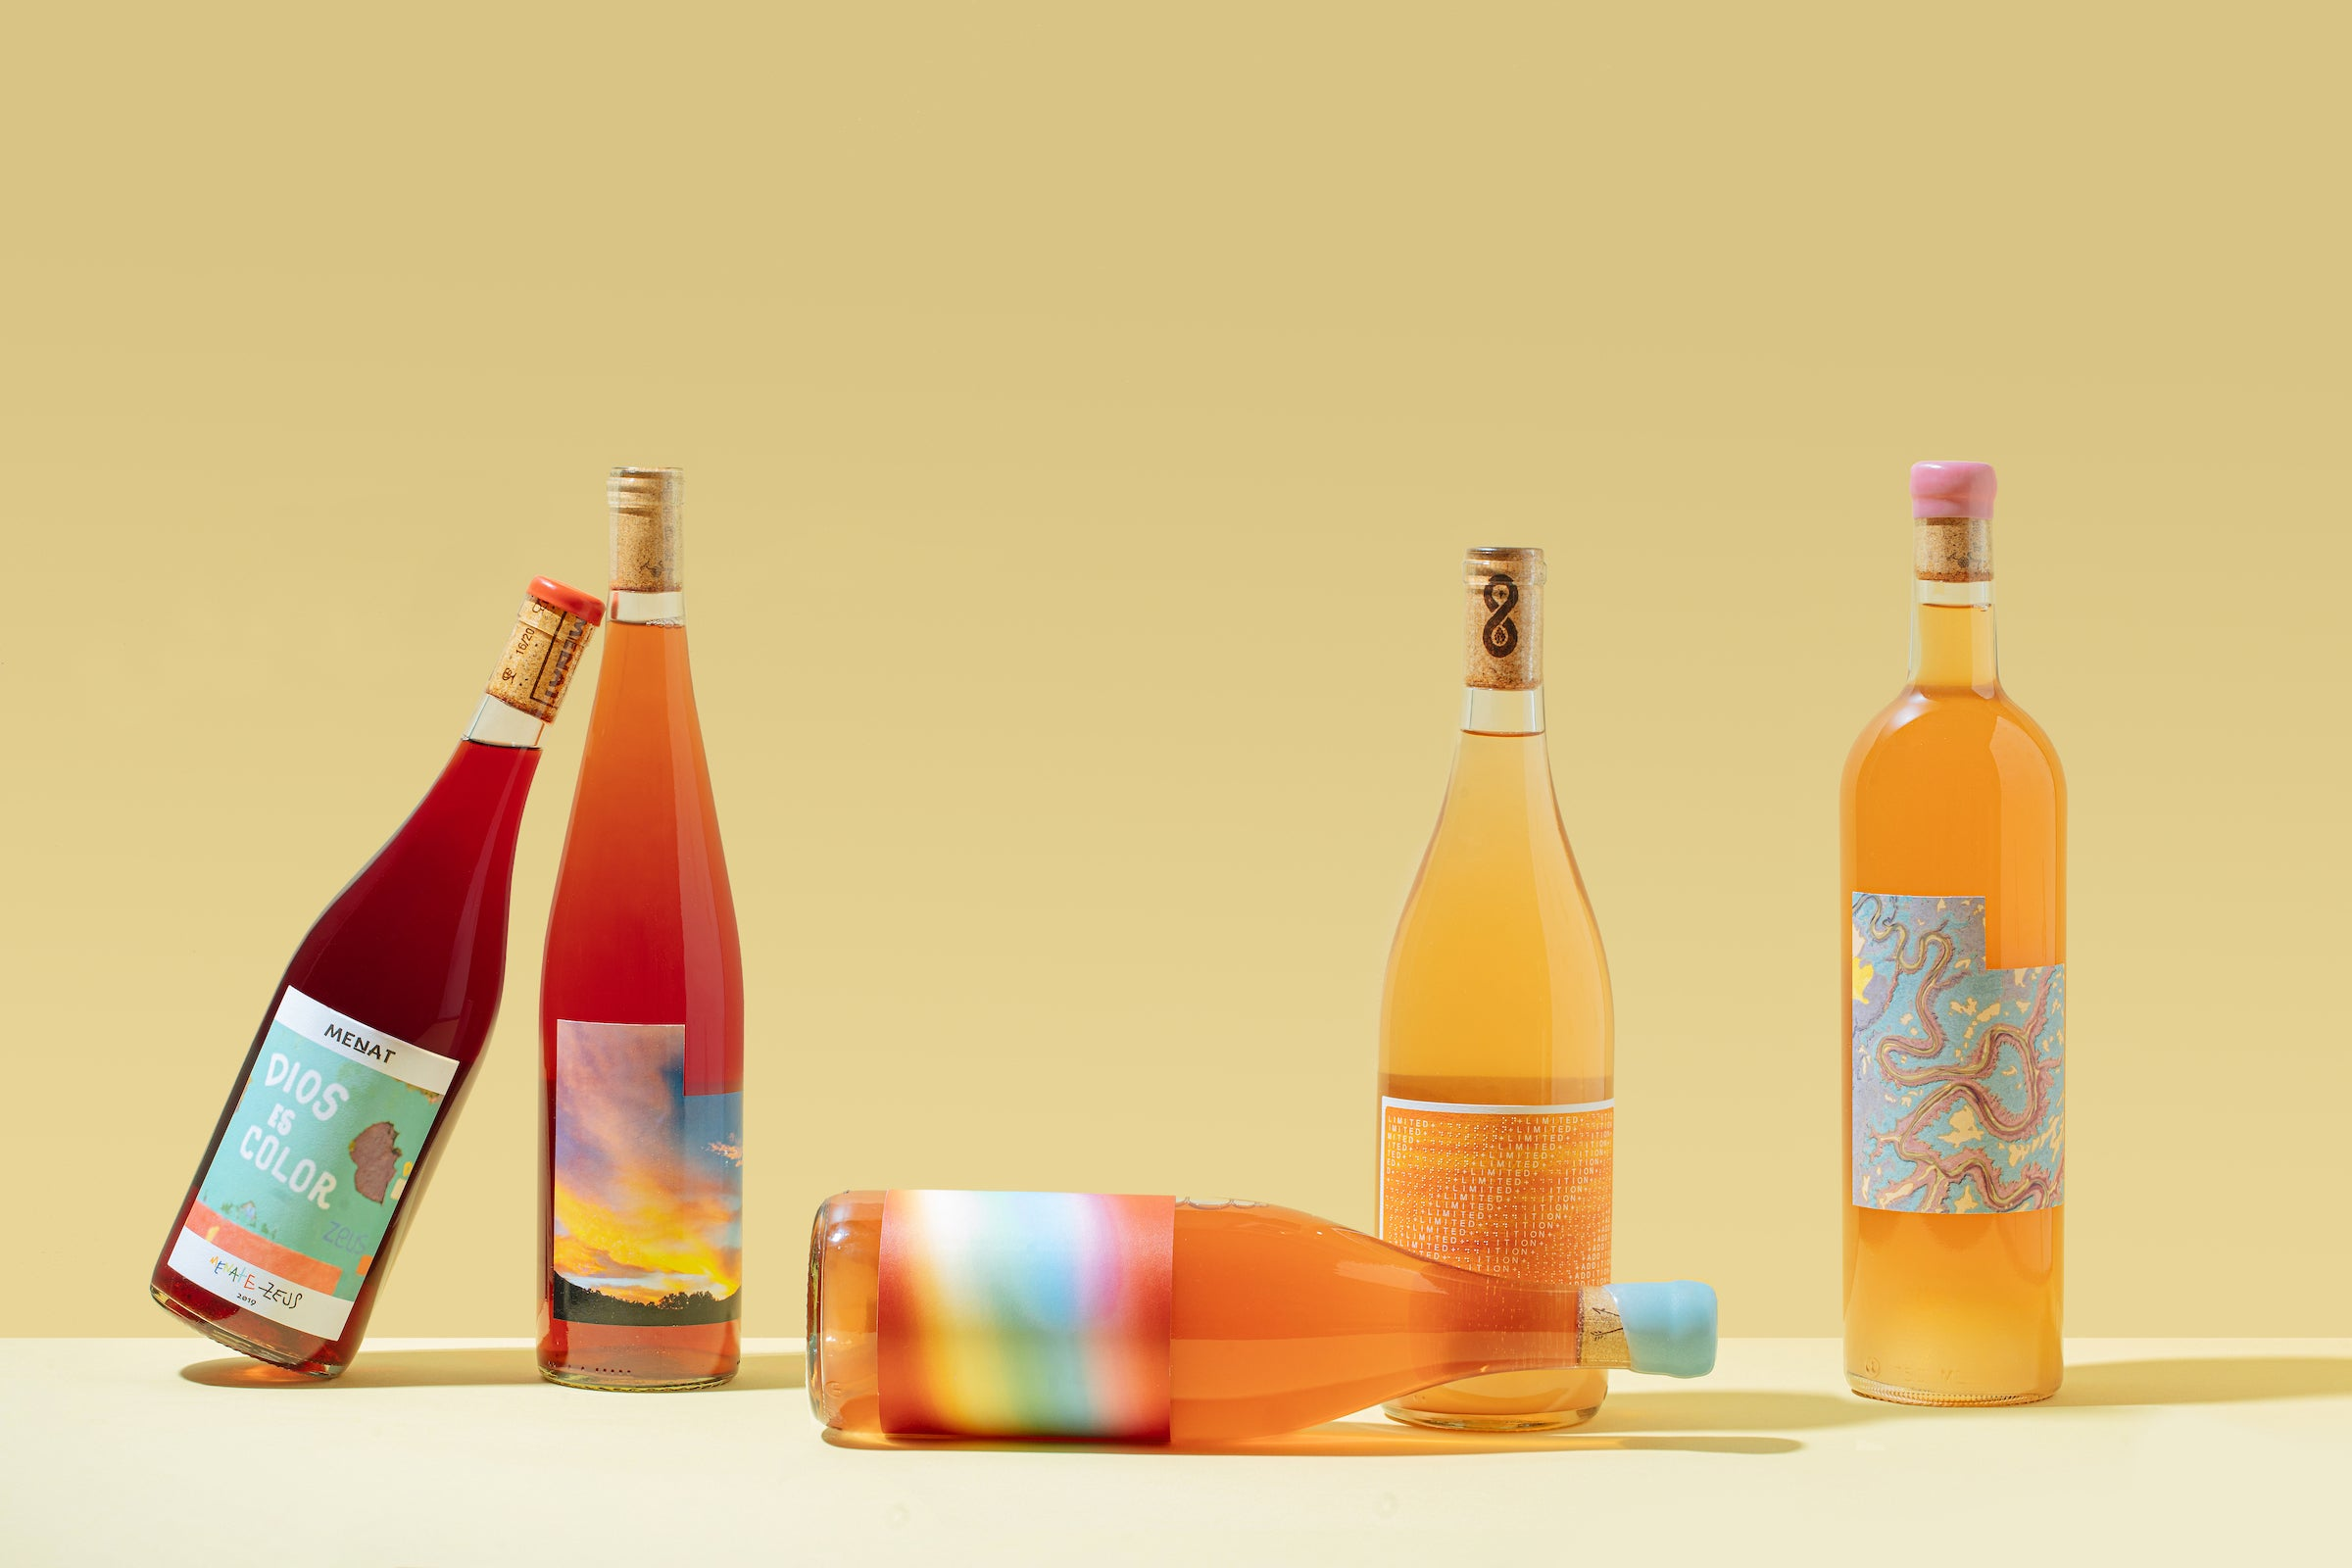 rose and orange natural wines from italy, oregon and california,